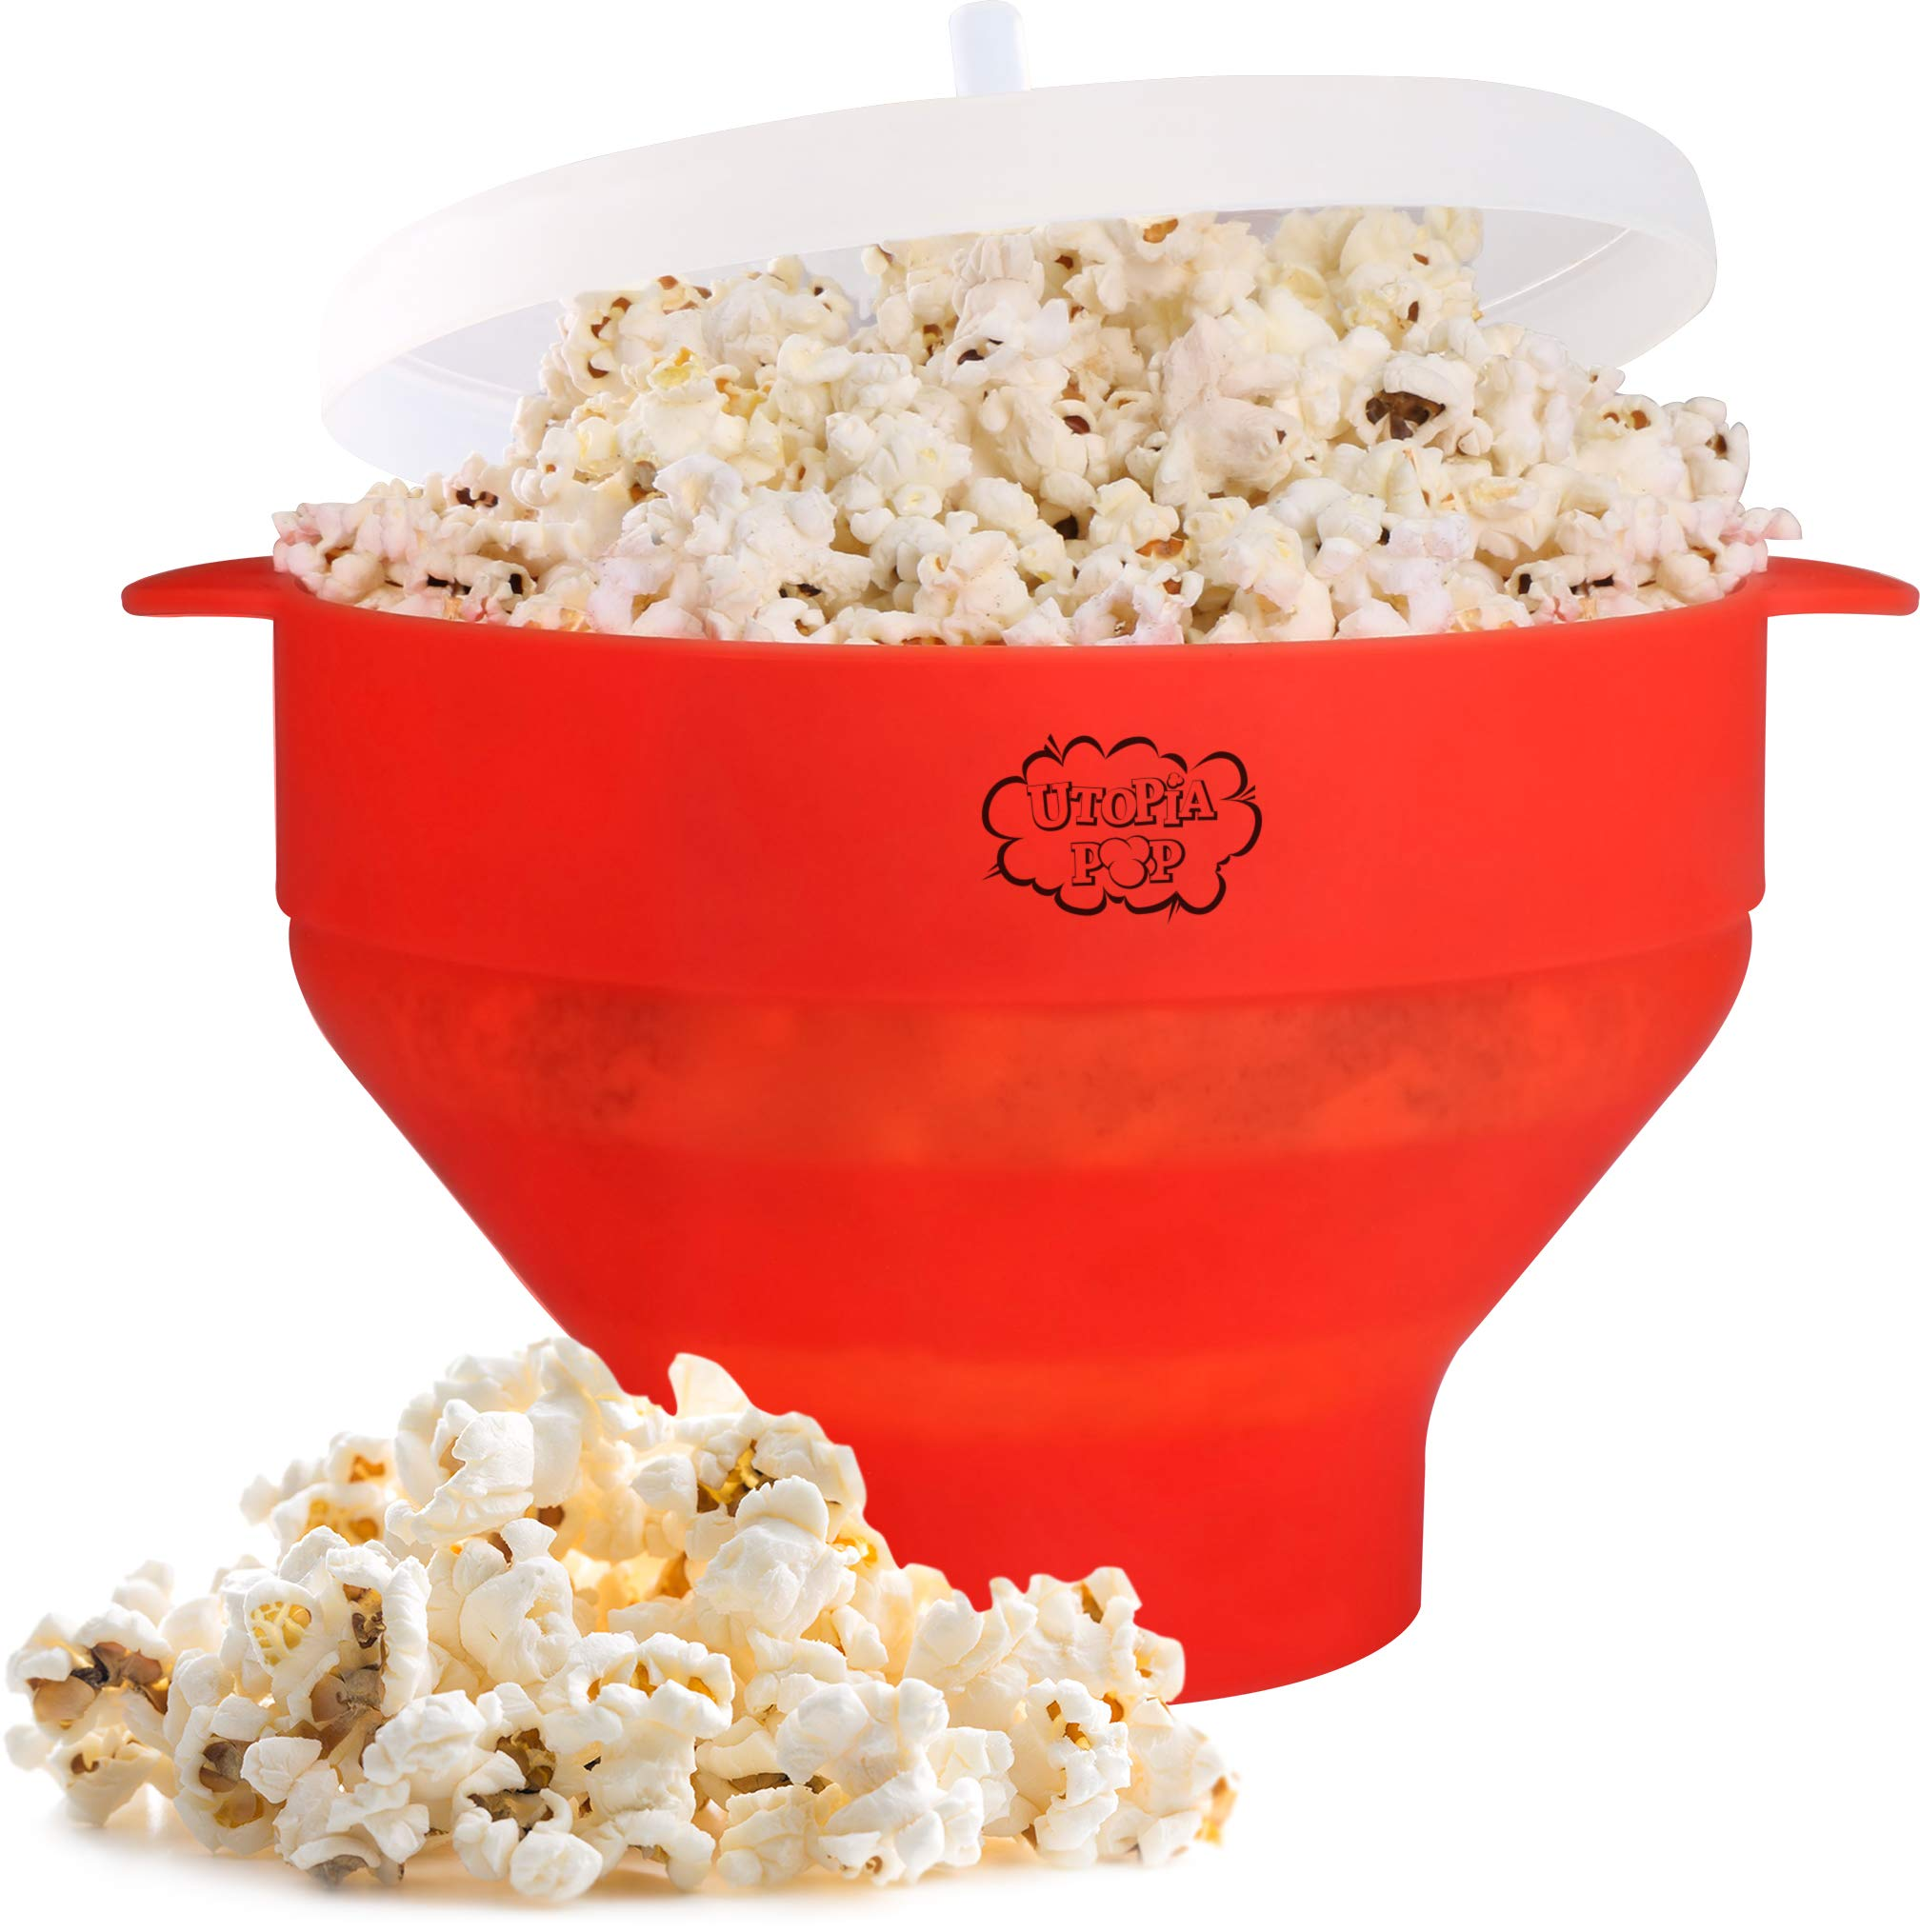 Quick, Hot, & Easy Popcorn Maker! Microwaveable Popcorn in Minutes! Collapsible Bowl with Convenient Handles!